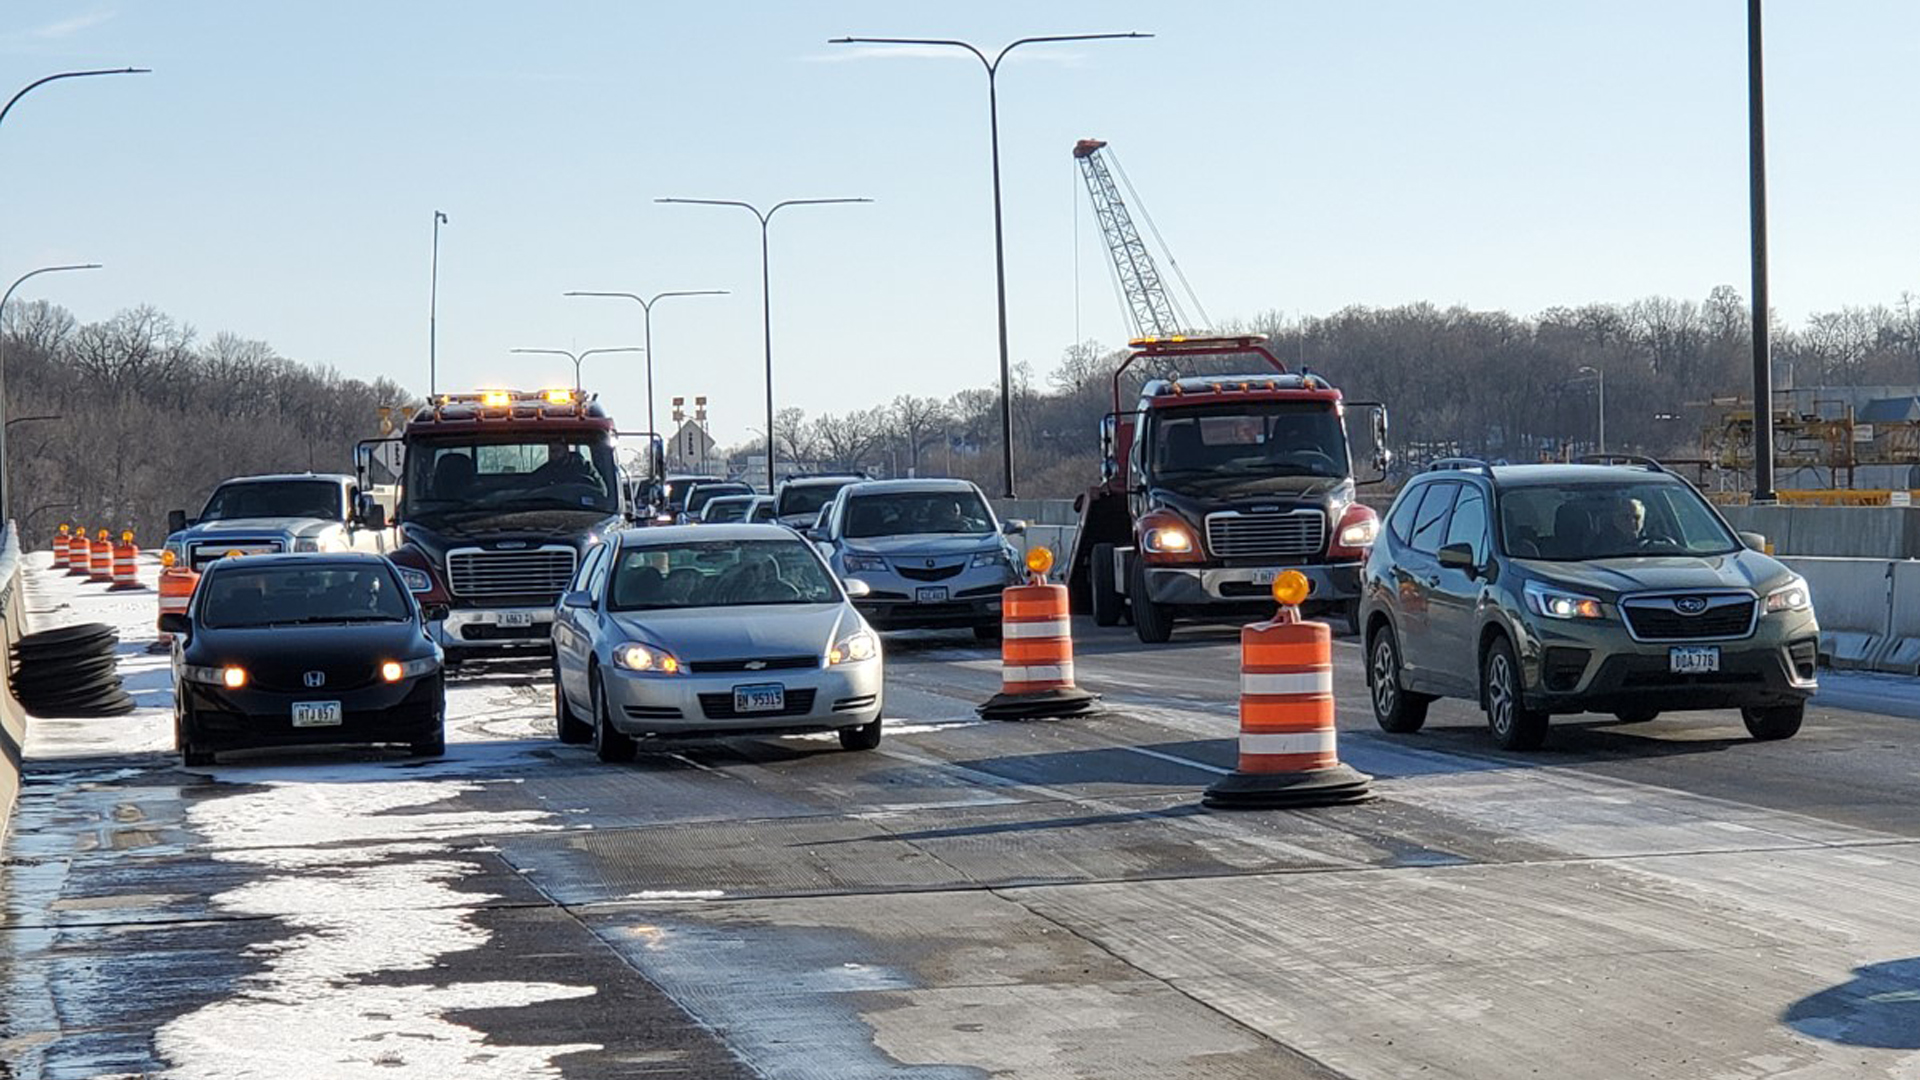 Tow trucks clear cars from an accident on I-74 in Moline, Illinois on Febraury 15 (photo: Ryan Risky, OurQuadCities.com)